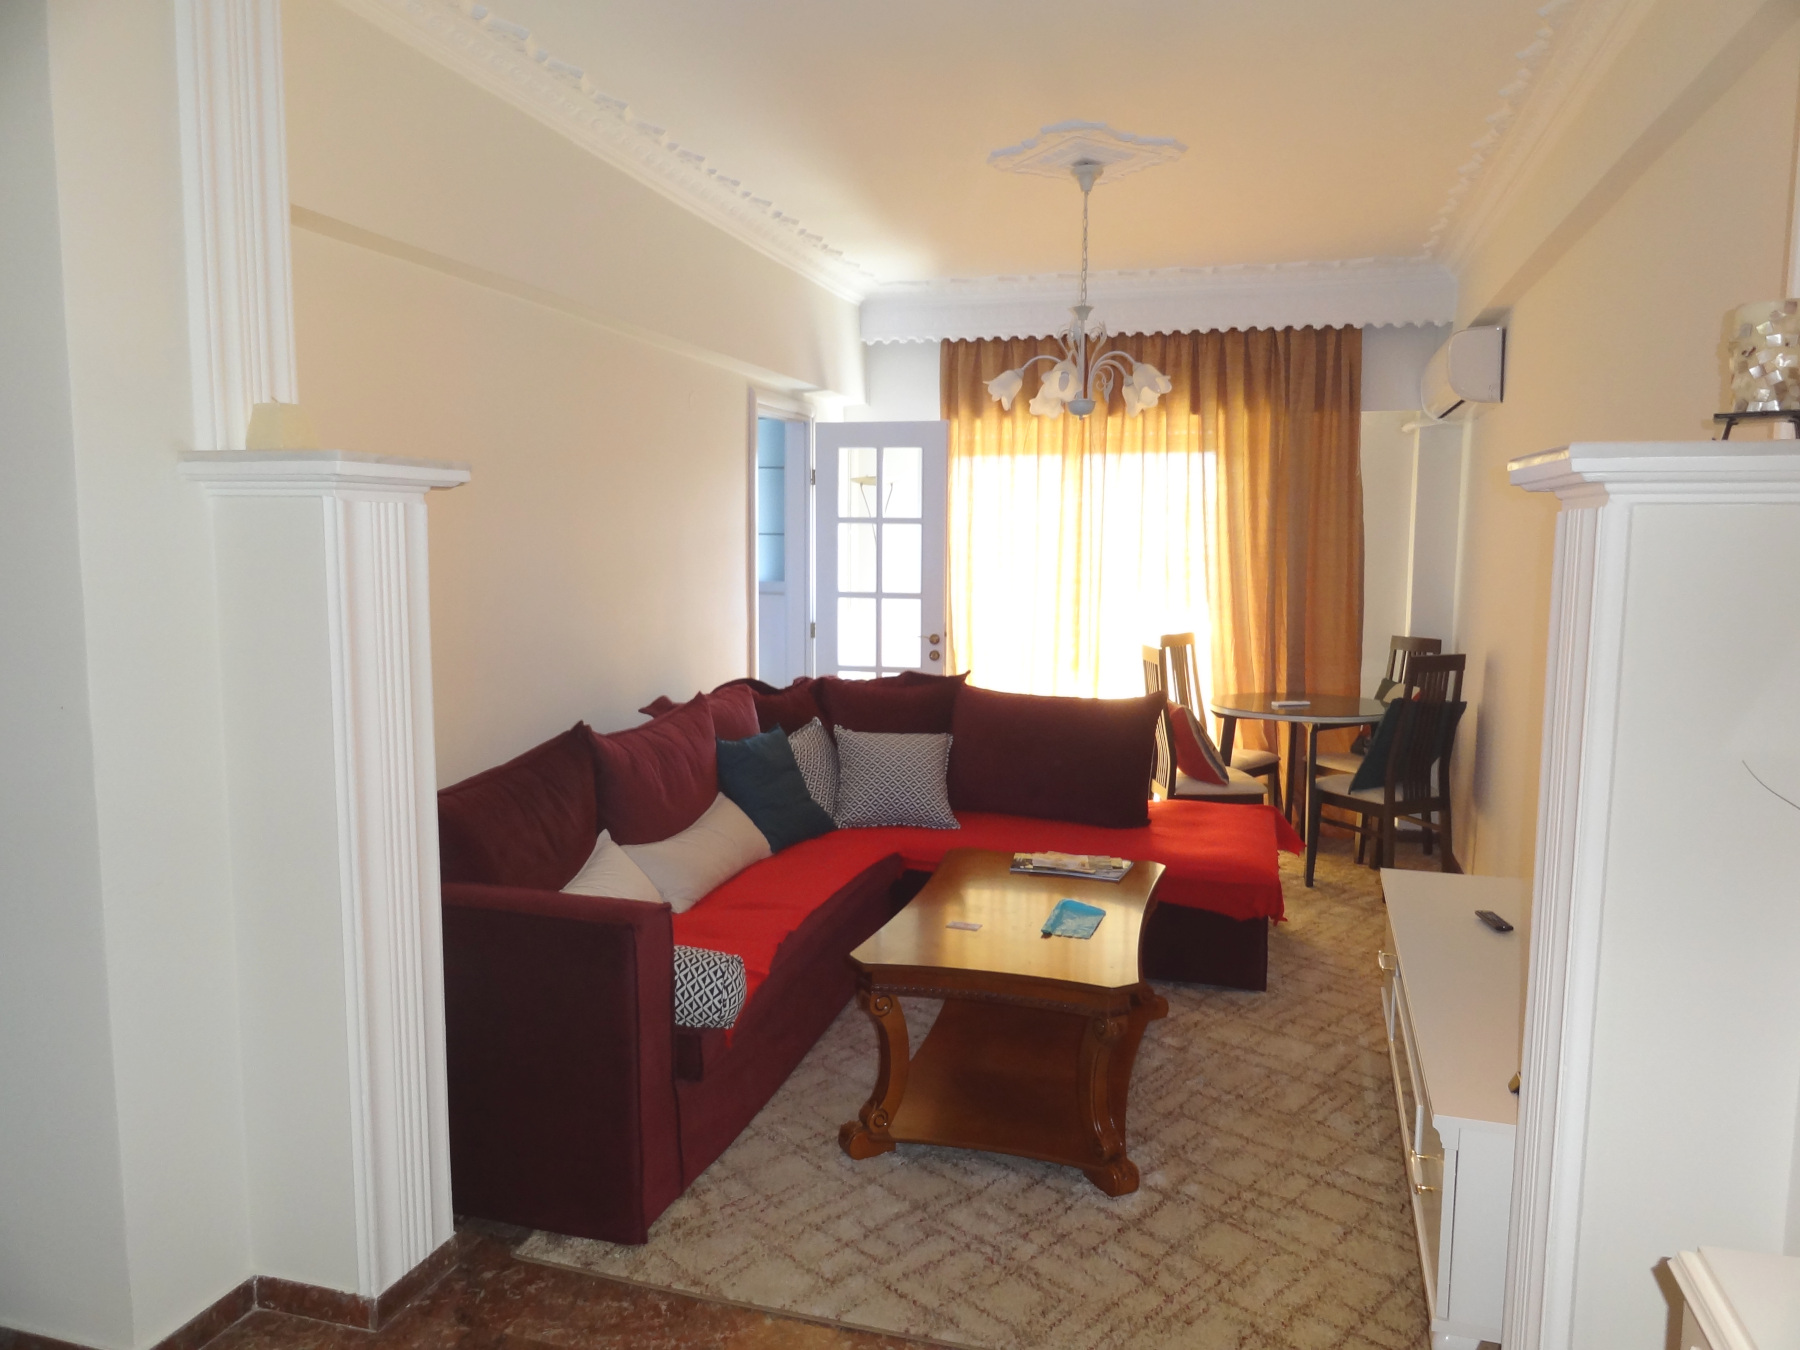 For rent 2 bedrooms renovated and fully furnished apartment of 74 sq.m. 2nd floor in the center of Ioannina near Pargis square